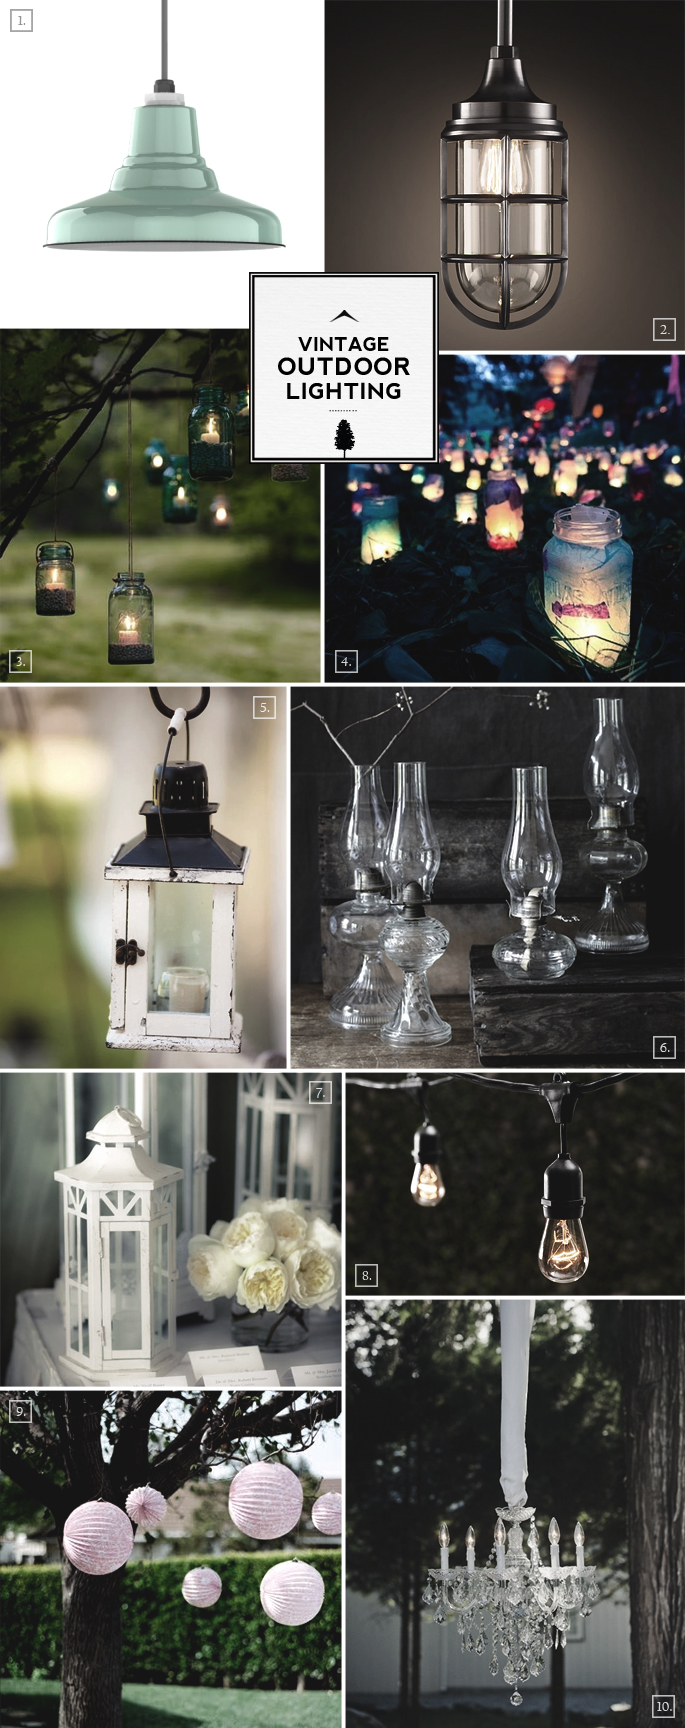 Vintage Backyard Lights : Vintage Outdoor Lighting Ideas Mood Board  Home Tree Atlas